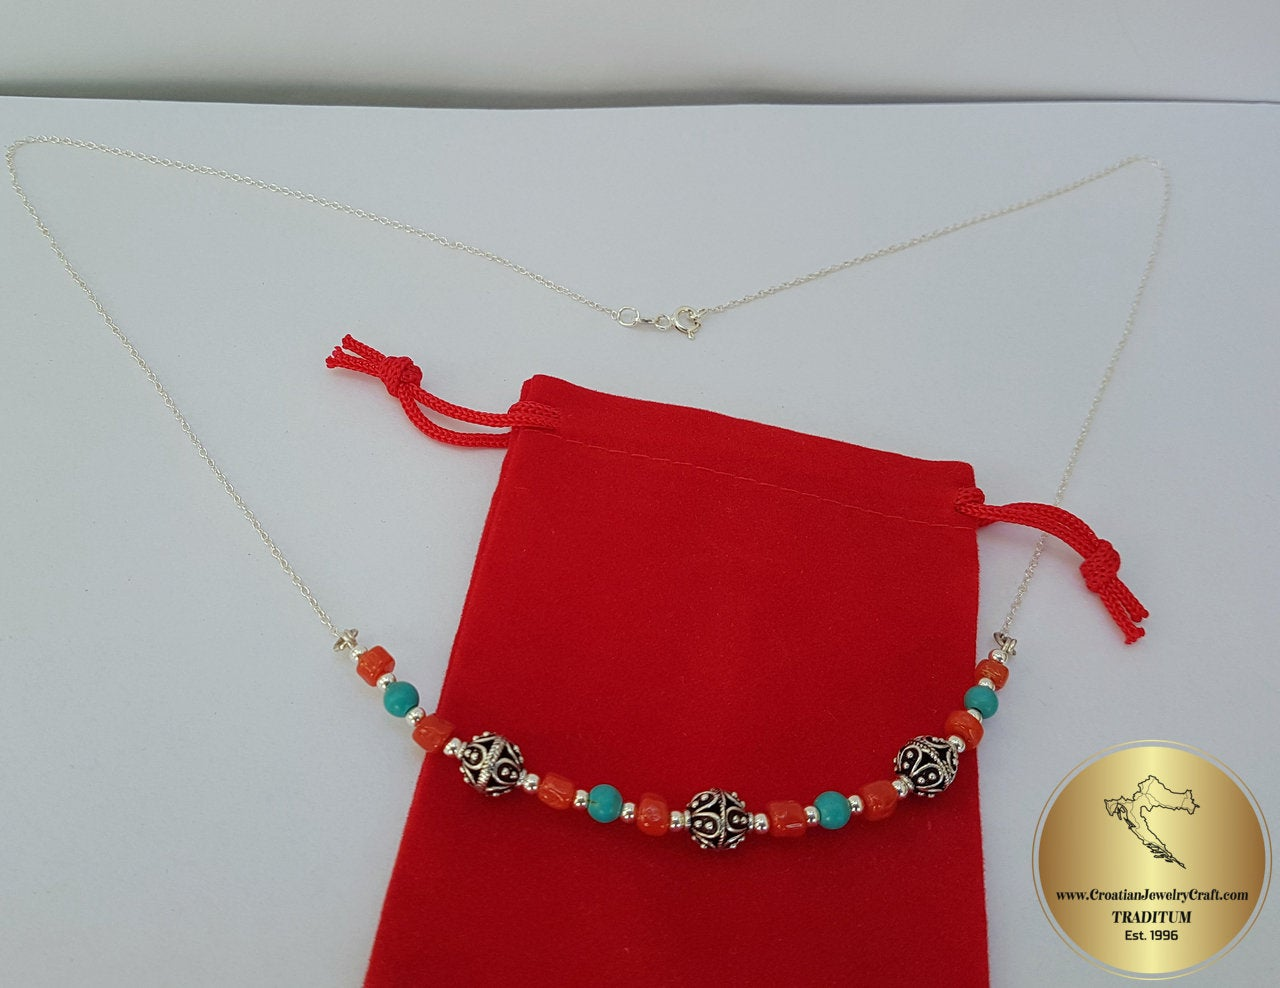 Undyed Natural Coral Necklace Dubrovnik Filigree Necklace Mediterranean Red Coral and Turquoise Necklace Solid Sterling Silver Necklace